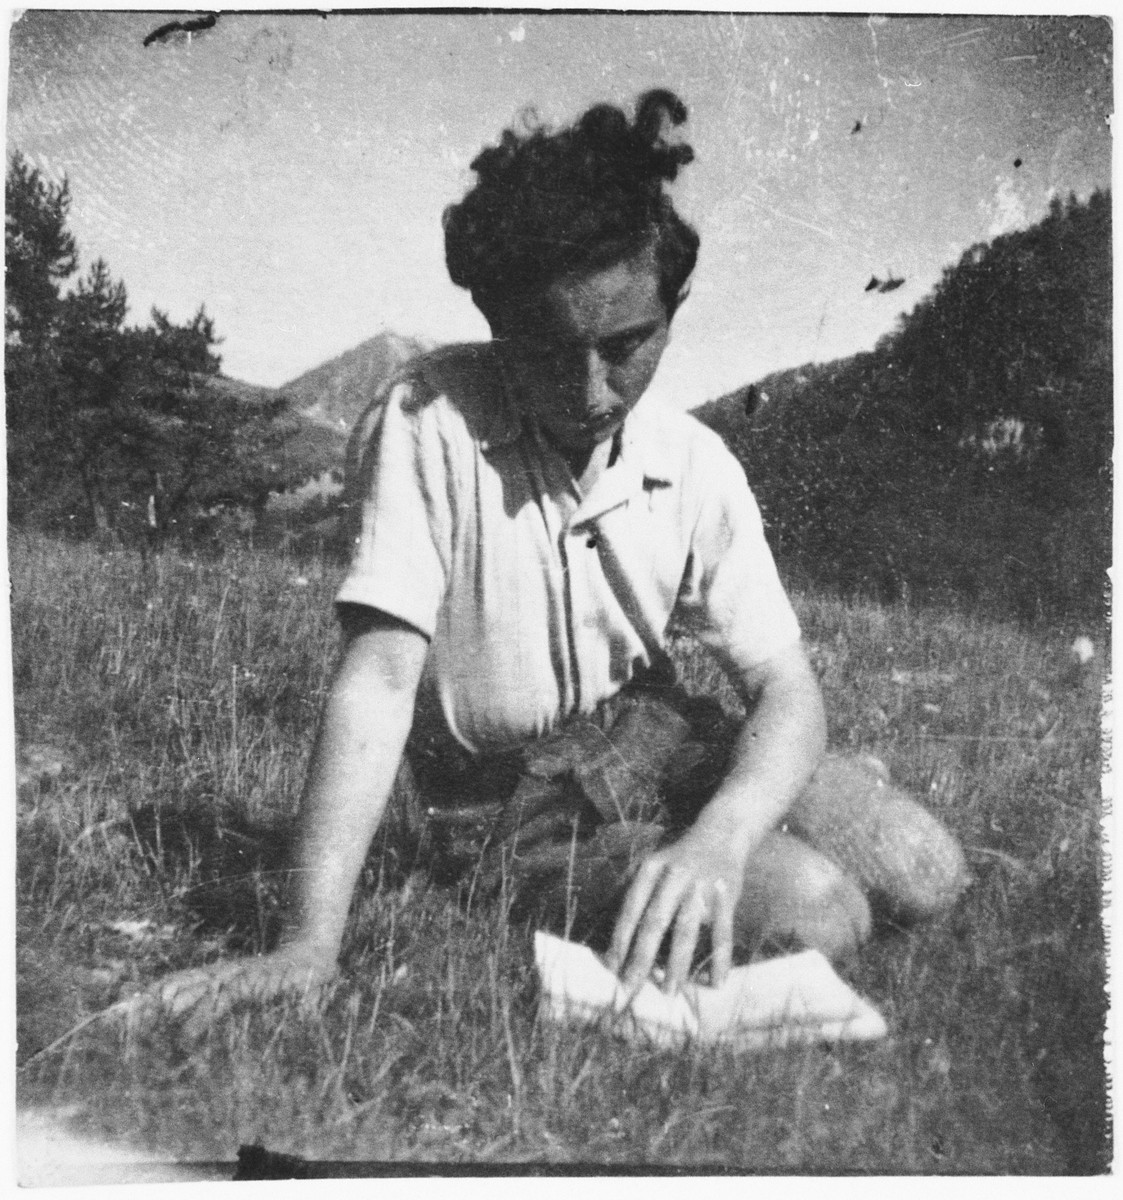 Jewish refugee Eryk Goldfarb reads a book on a grassy hillside while living in hiding in Col de Menee, France.